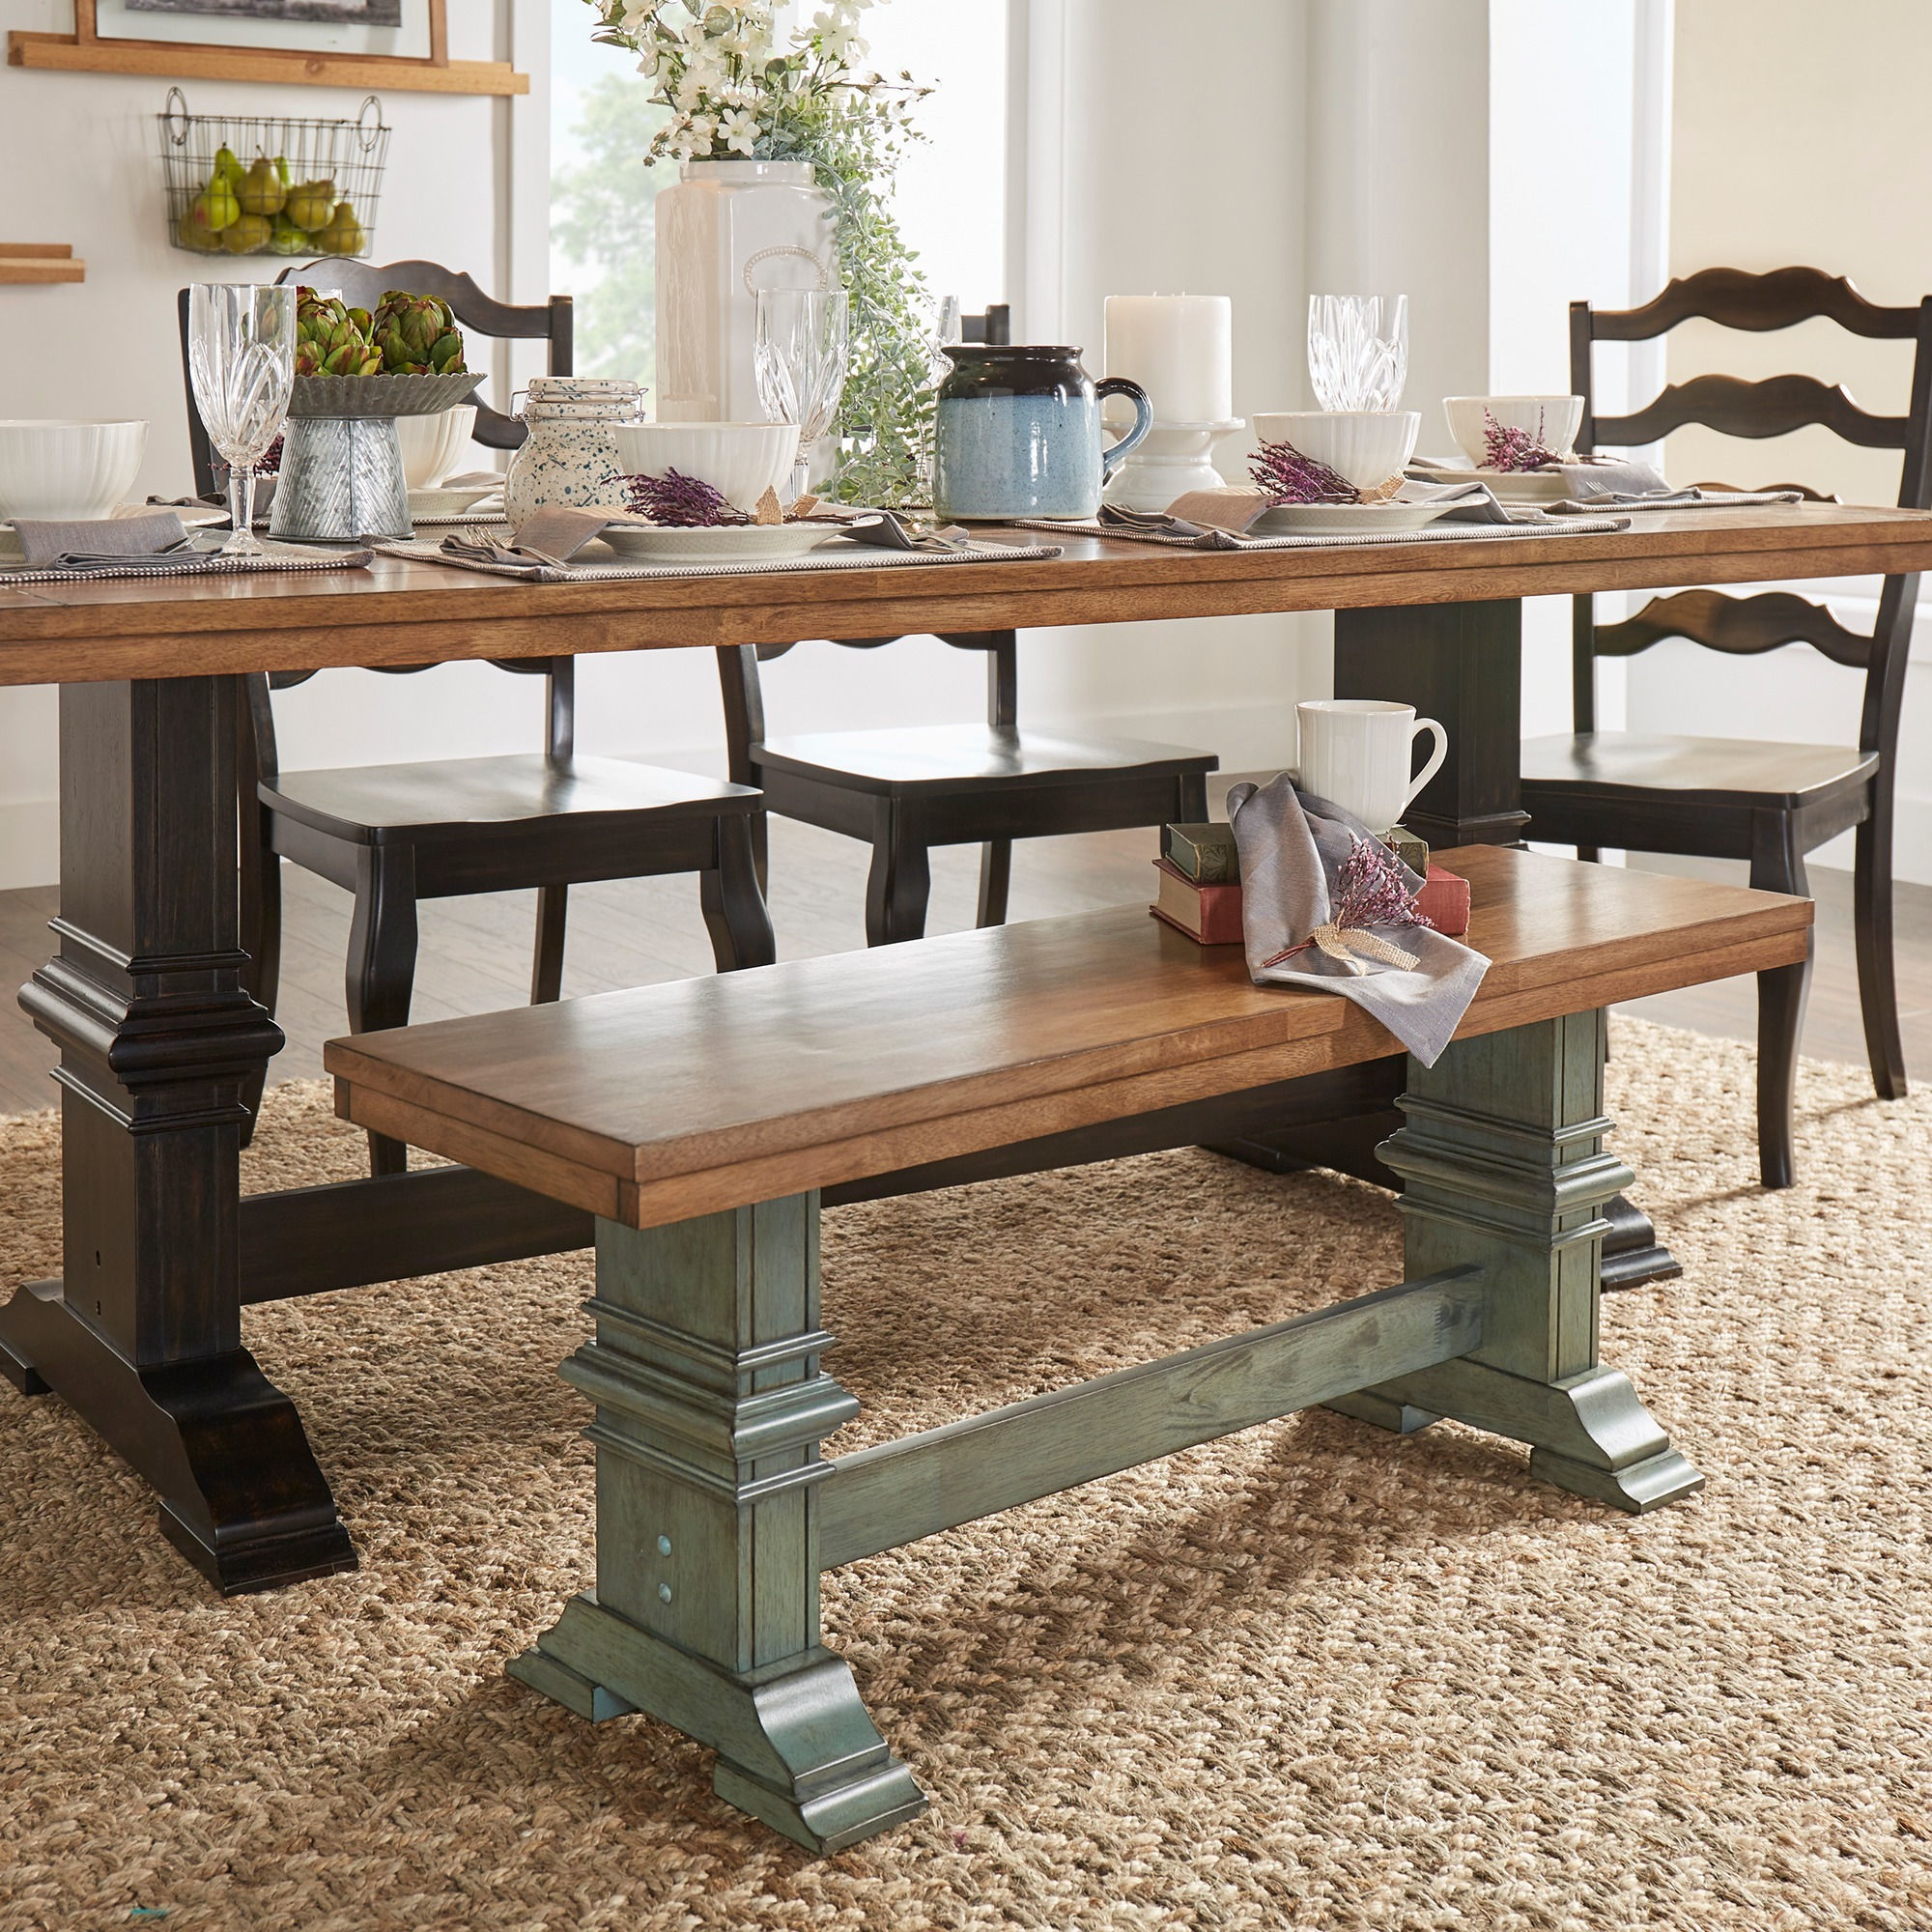 Swindon Rustic Oak Turnbuckle Dining Bench by iNSPIRE Q Classic - Free  Shipping Today - Overstock.com - 14319134